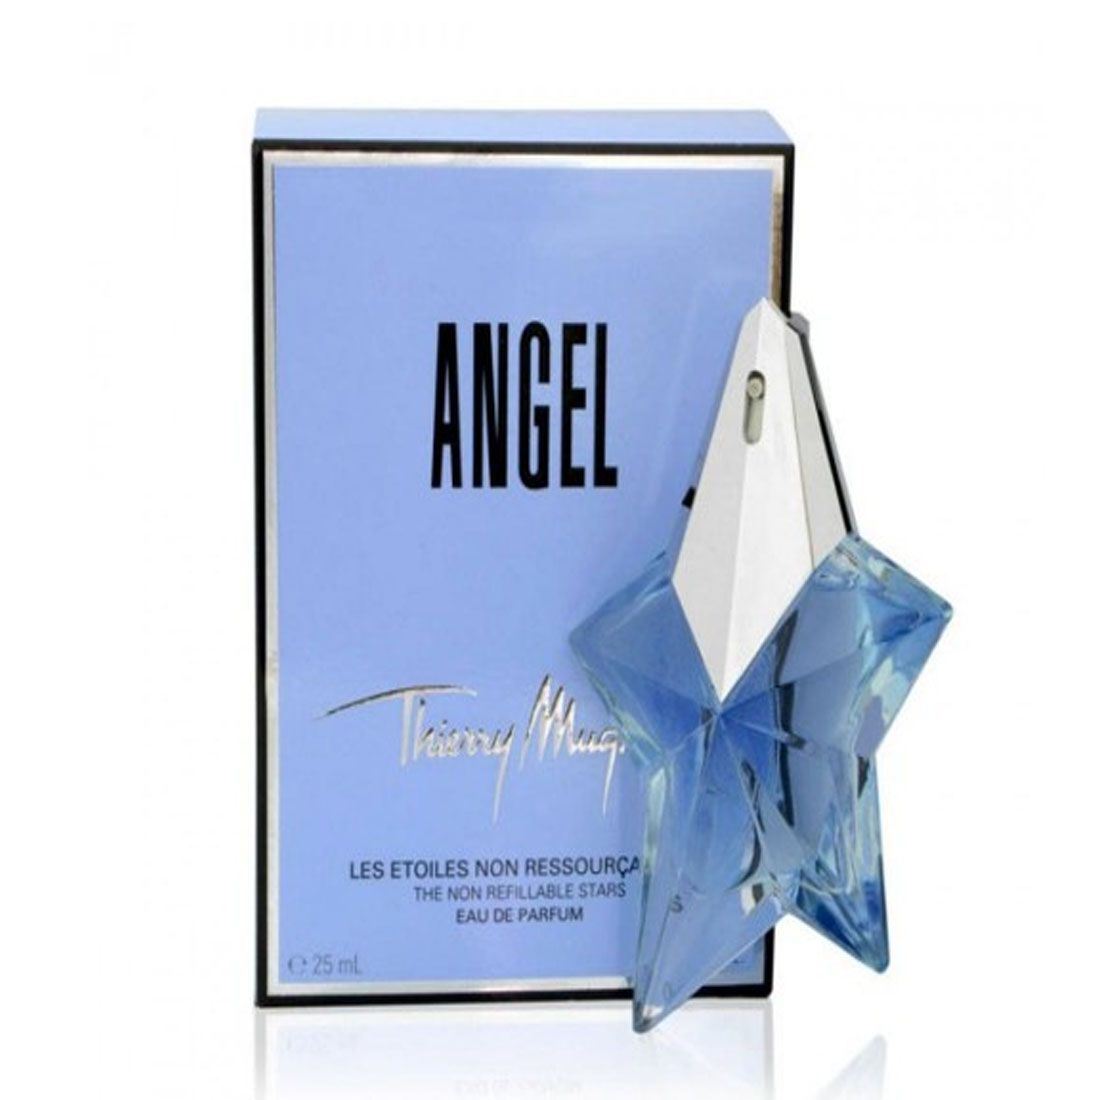 Perfume Angel Thierry Mugler 50ml Eau Parfum